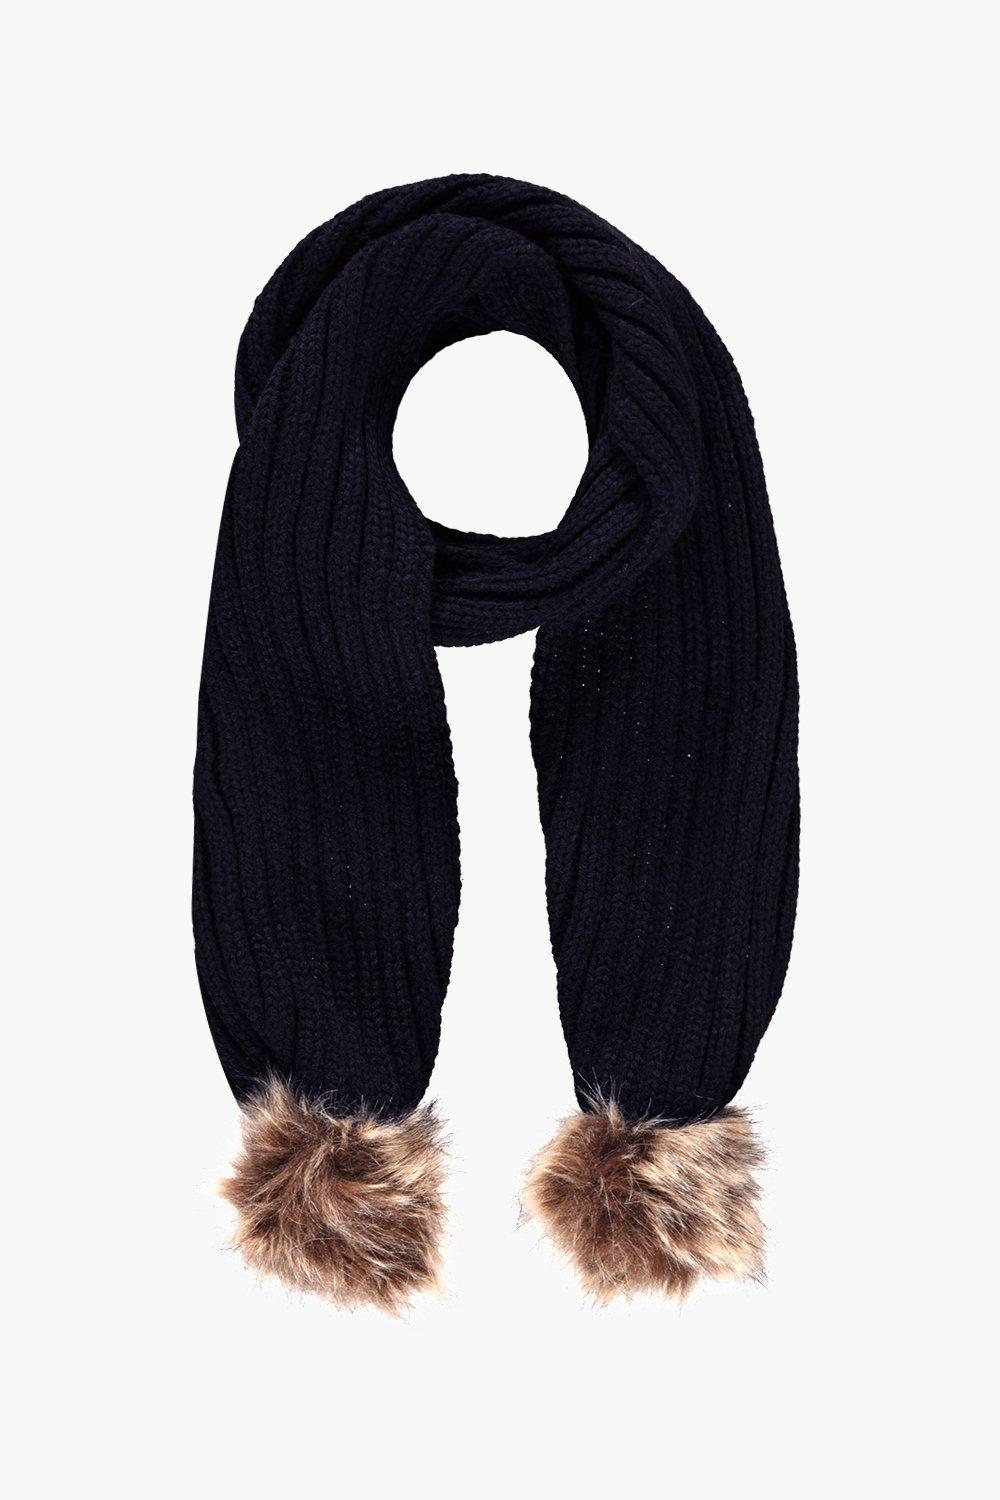 Faux Fur Pom Knitted Scarf - black - Eve Faux Fur